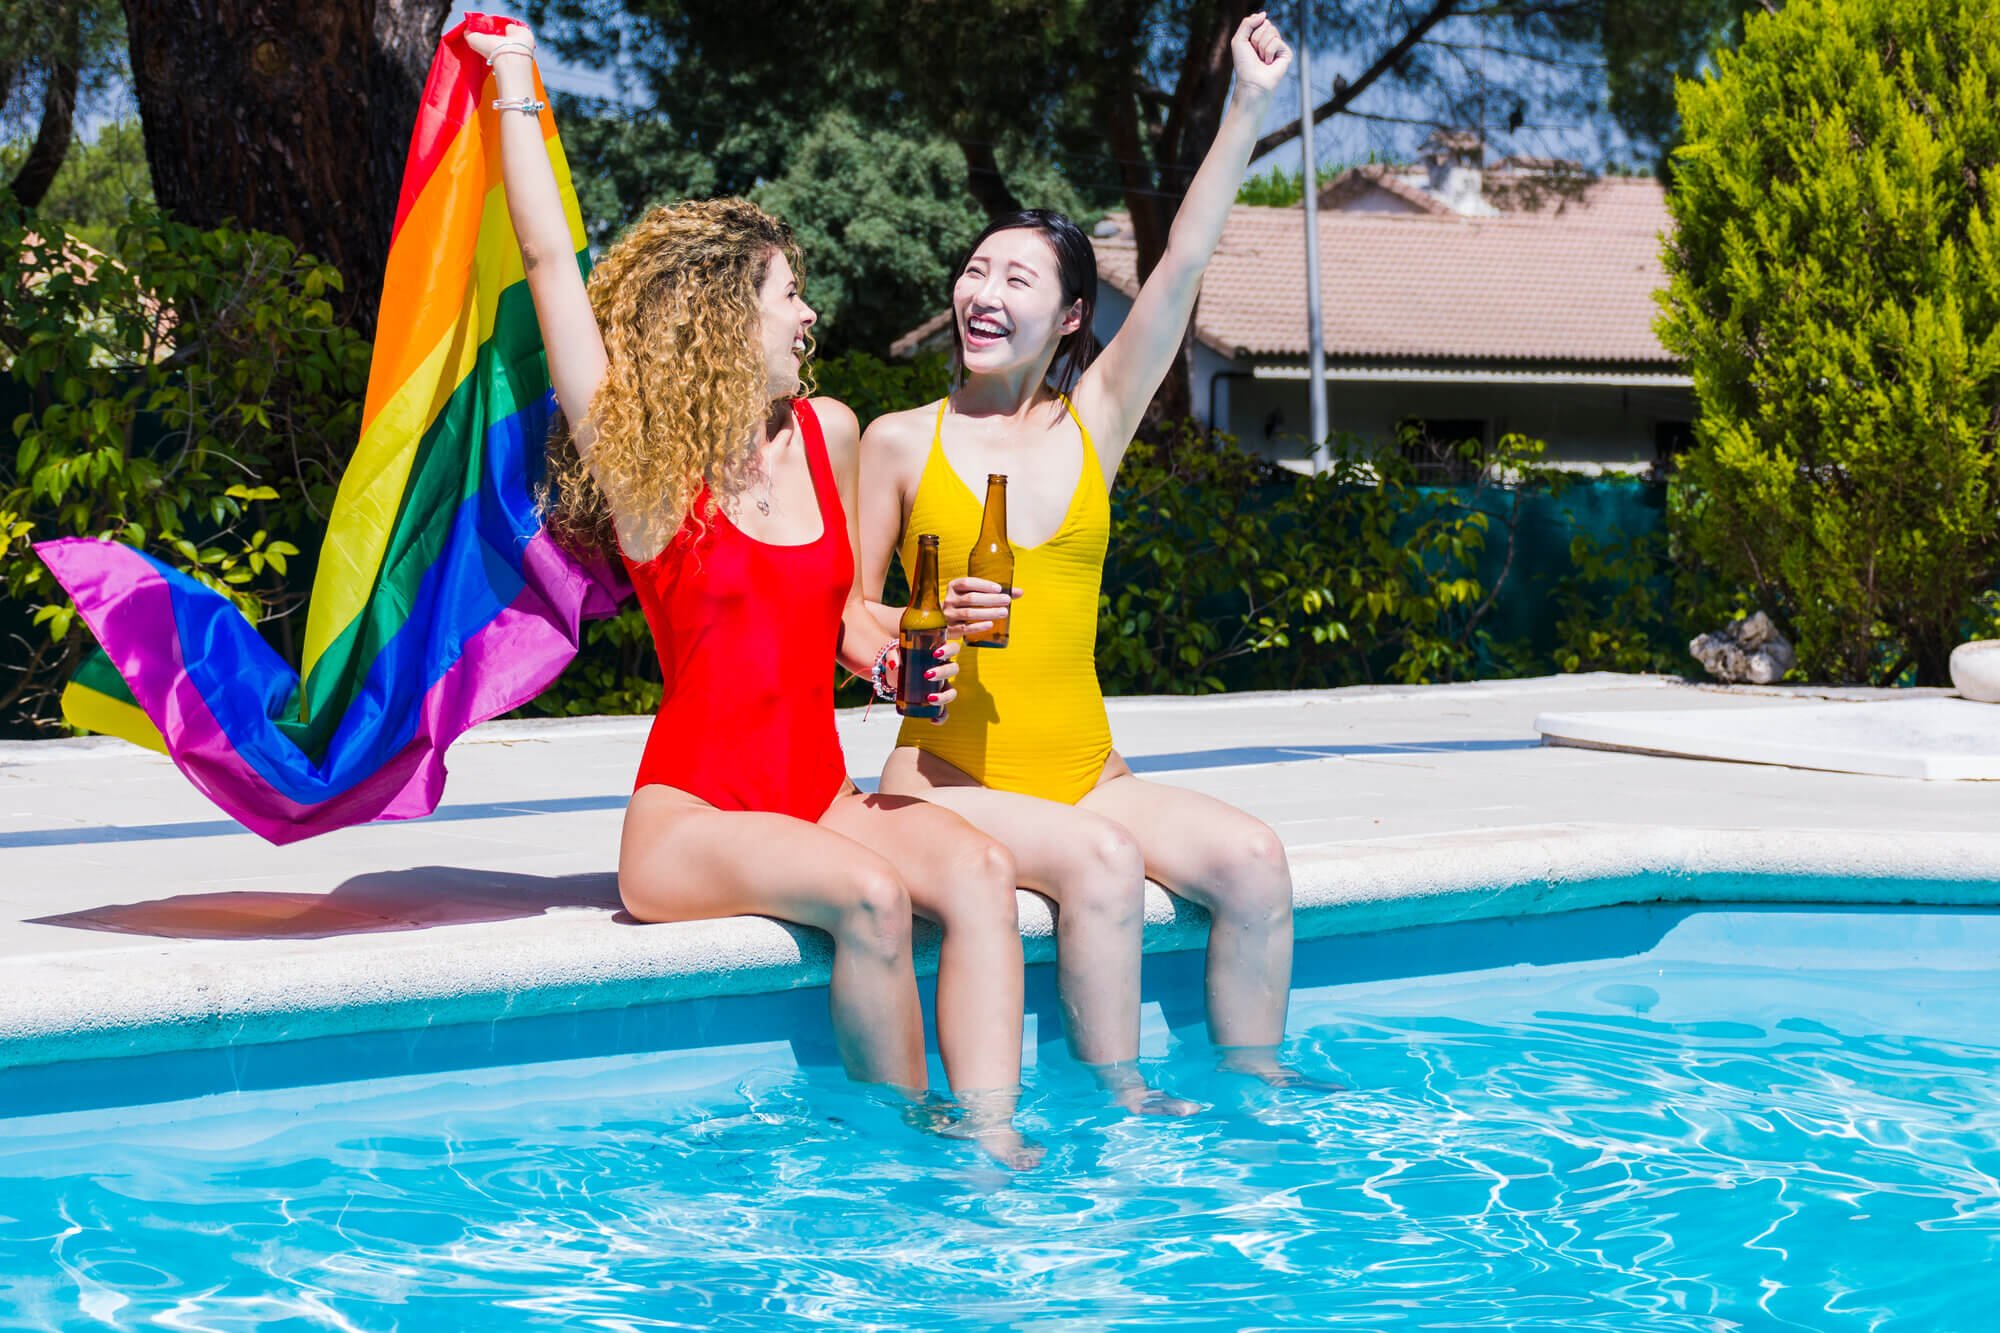 Where to stay for Orlando gay pride